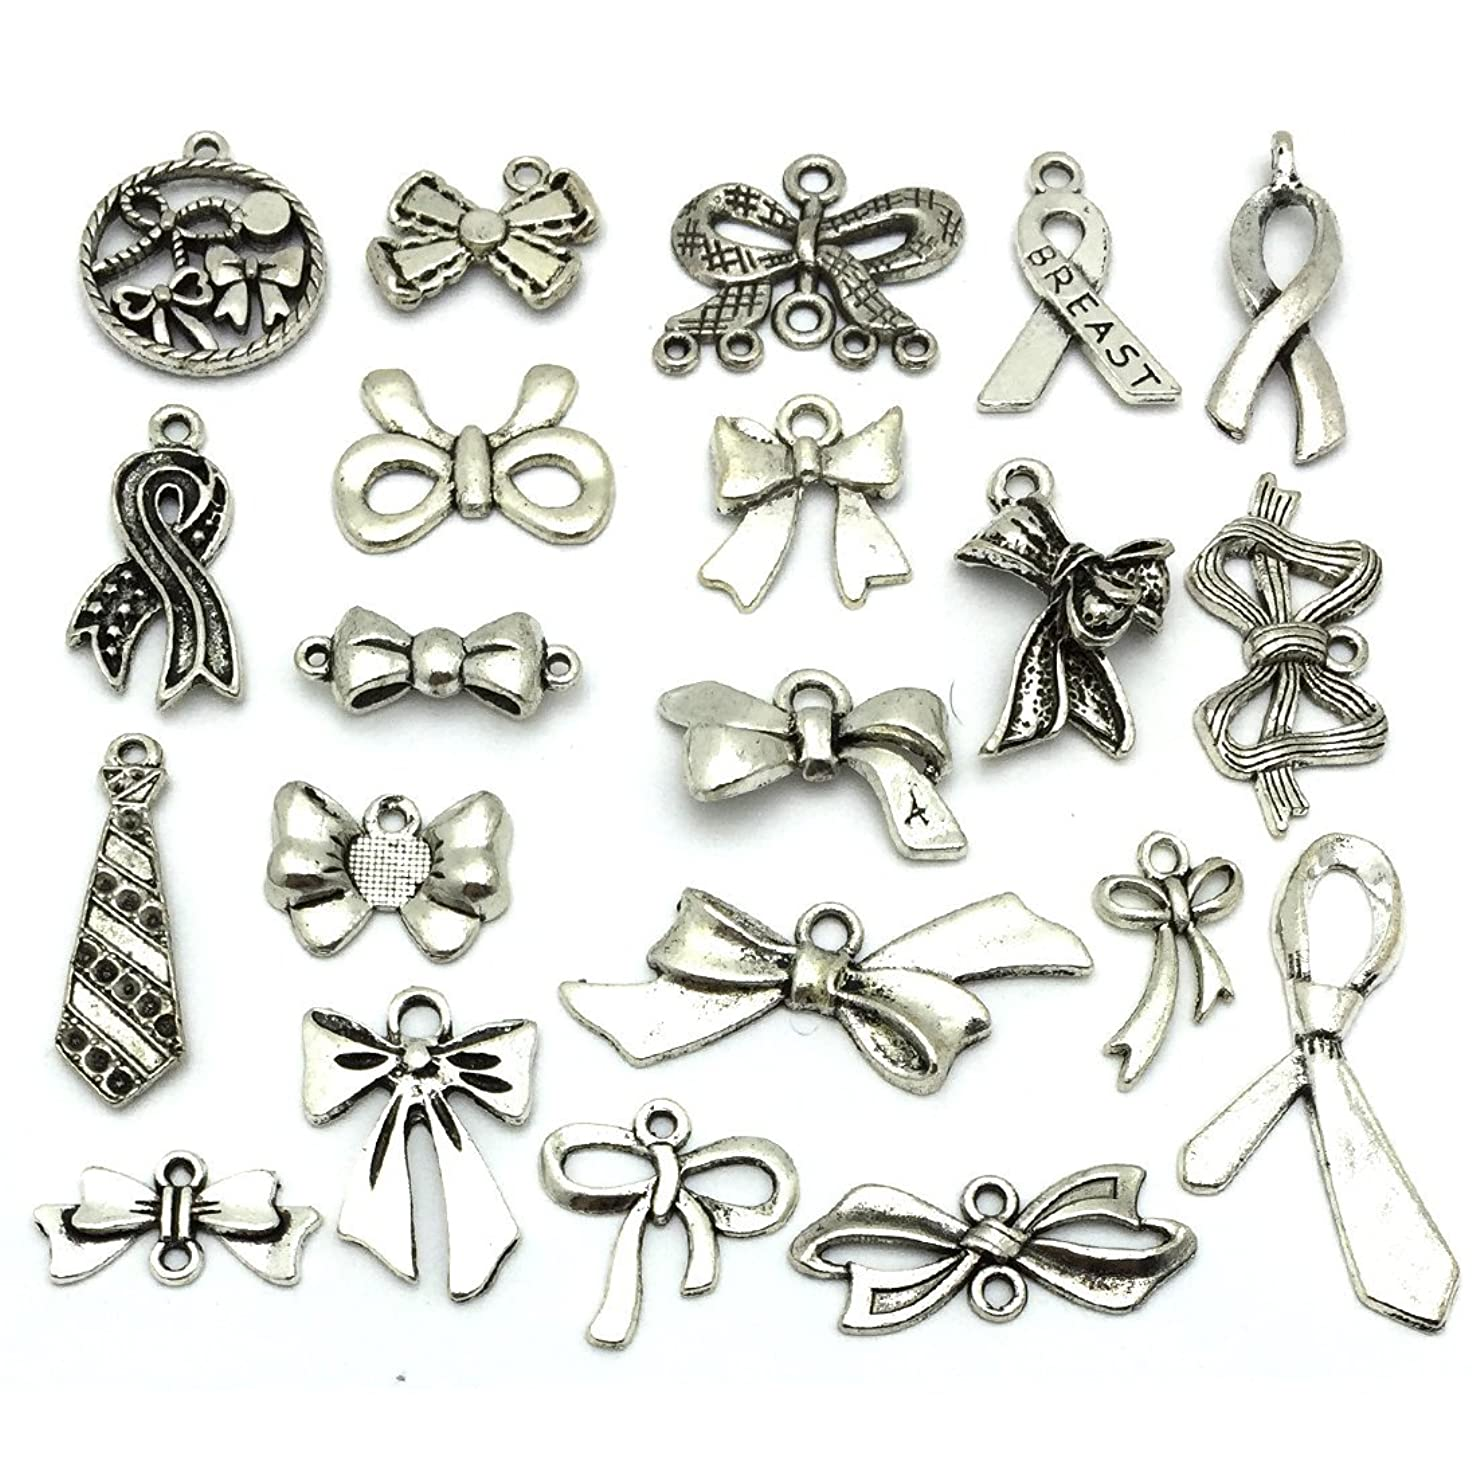 Bow Tie Charms, JIALEEY Wholesale Bulk Lots Antique Silver Alloy Charms Pendants DIY for Necklace Bracelet Jewelry Making and Crafting